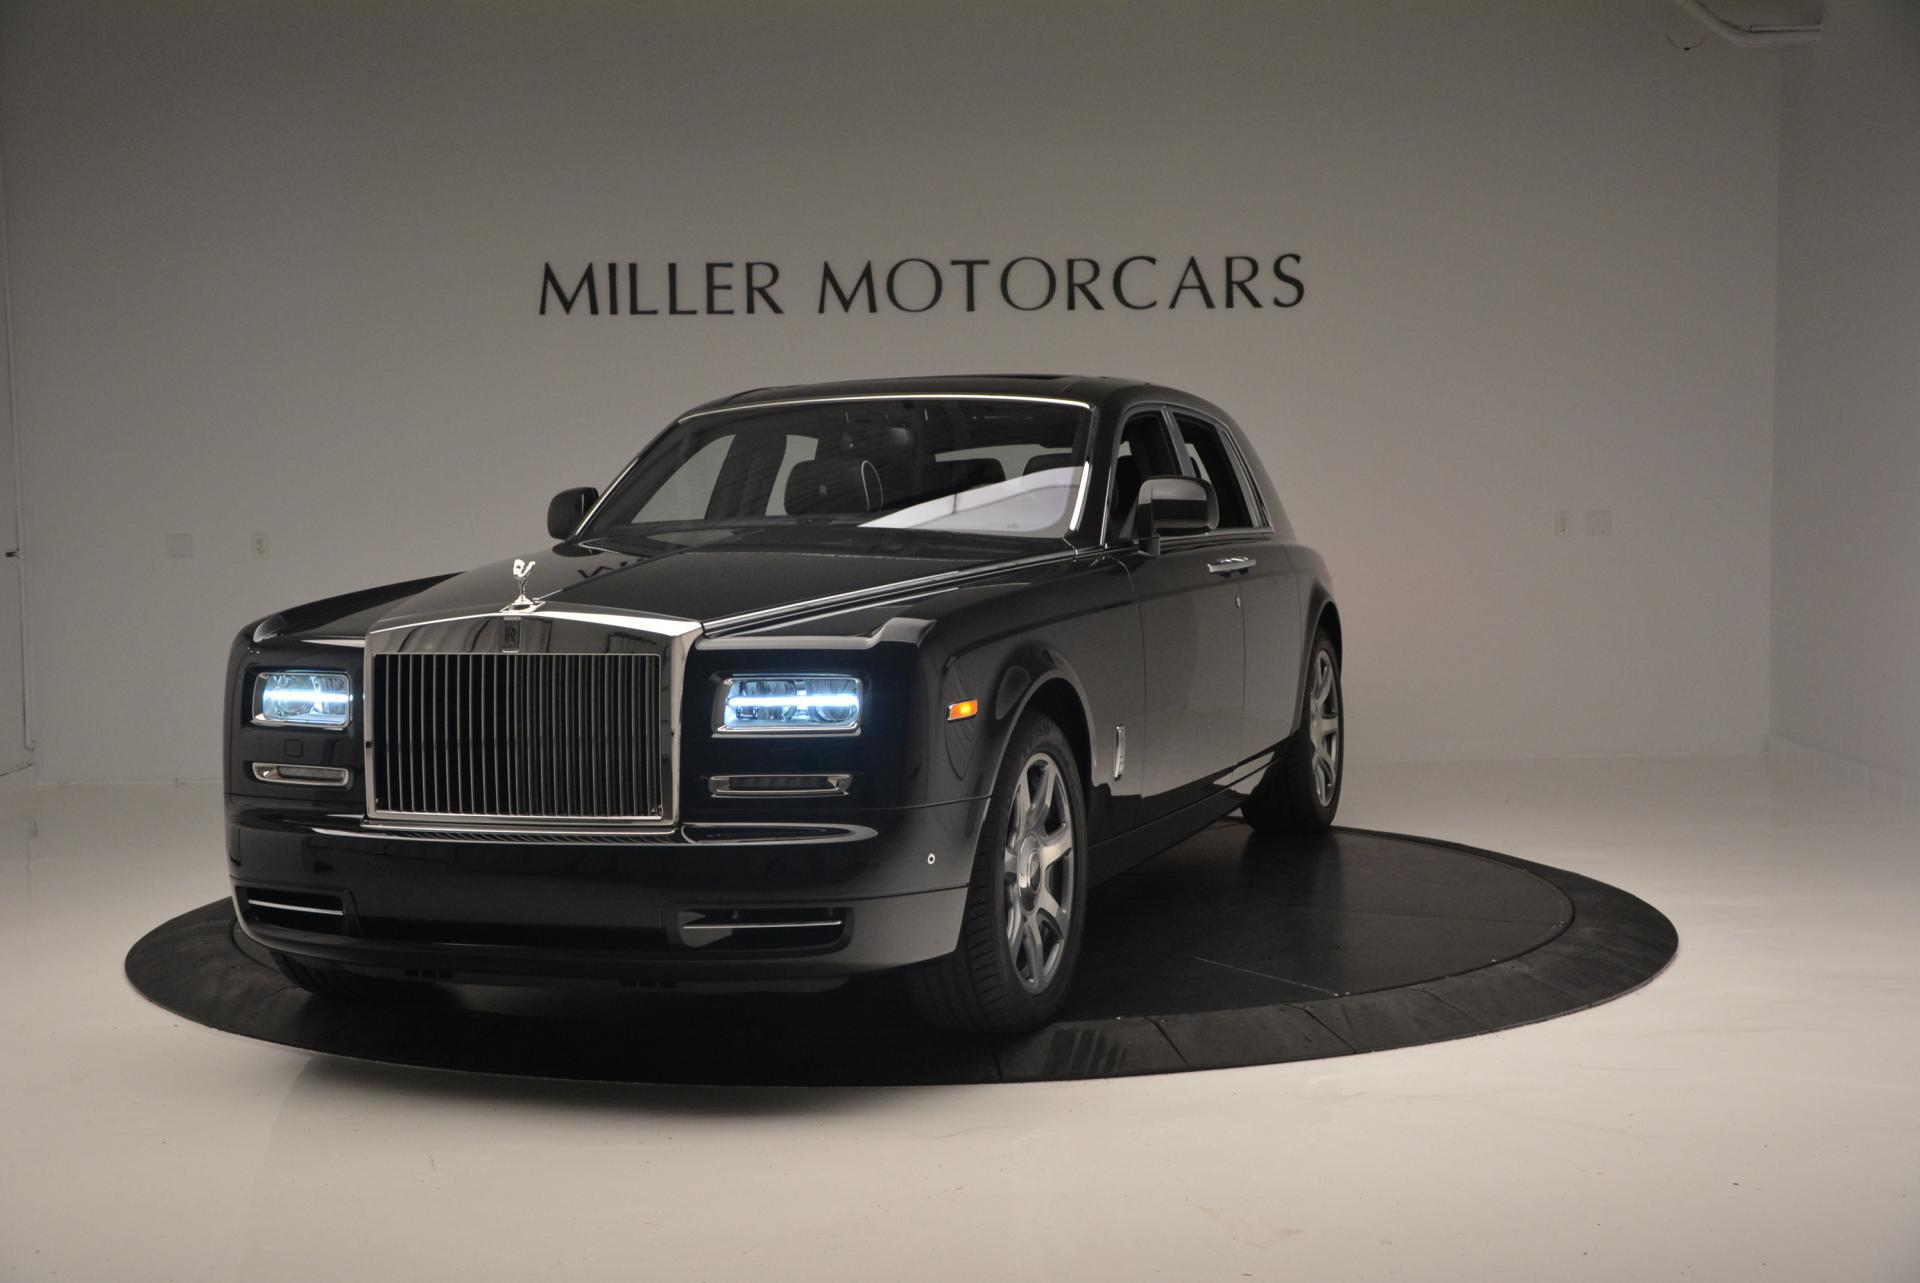 New 2016 Rolls-Royce Phantom for sale Sold at Aston Martin of Greenwich in Greenwich CT 06830 1